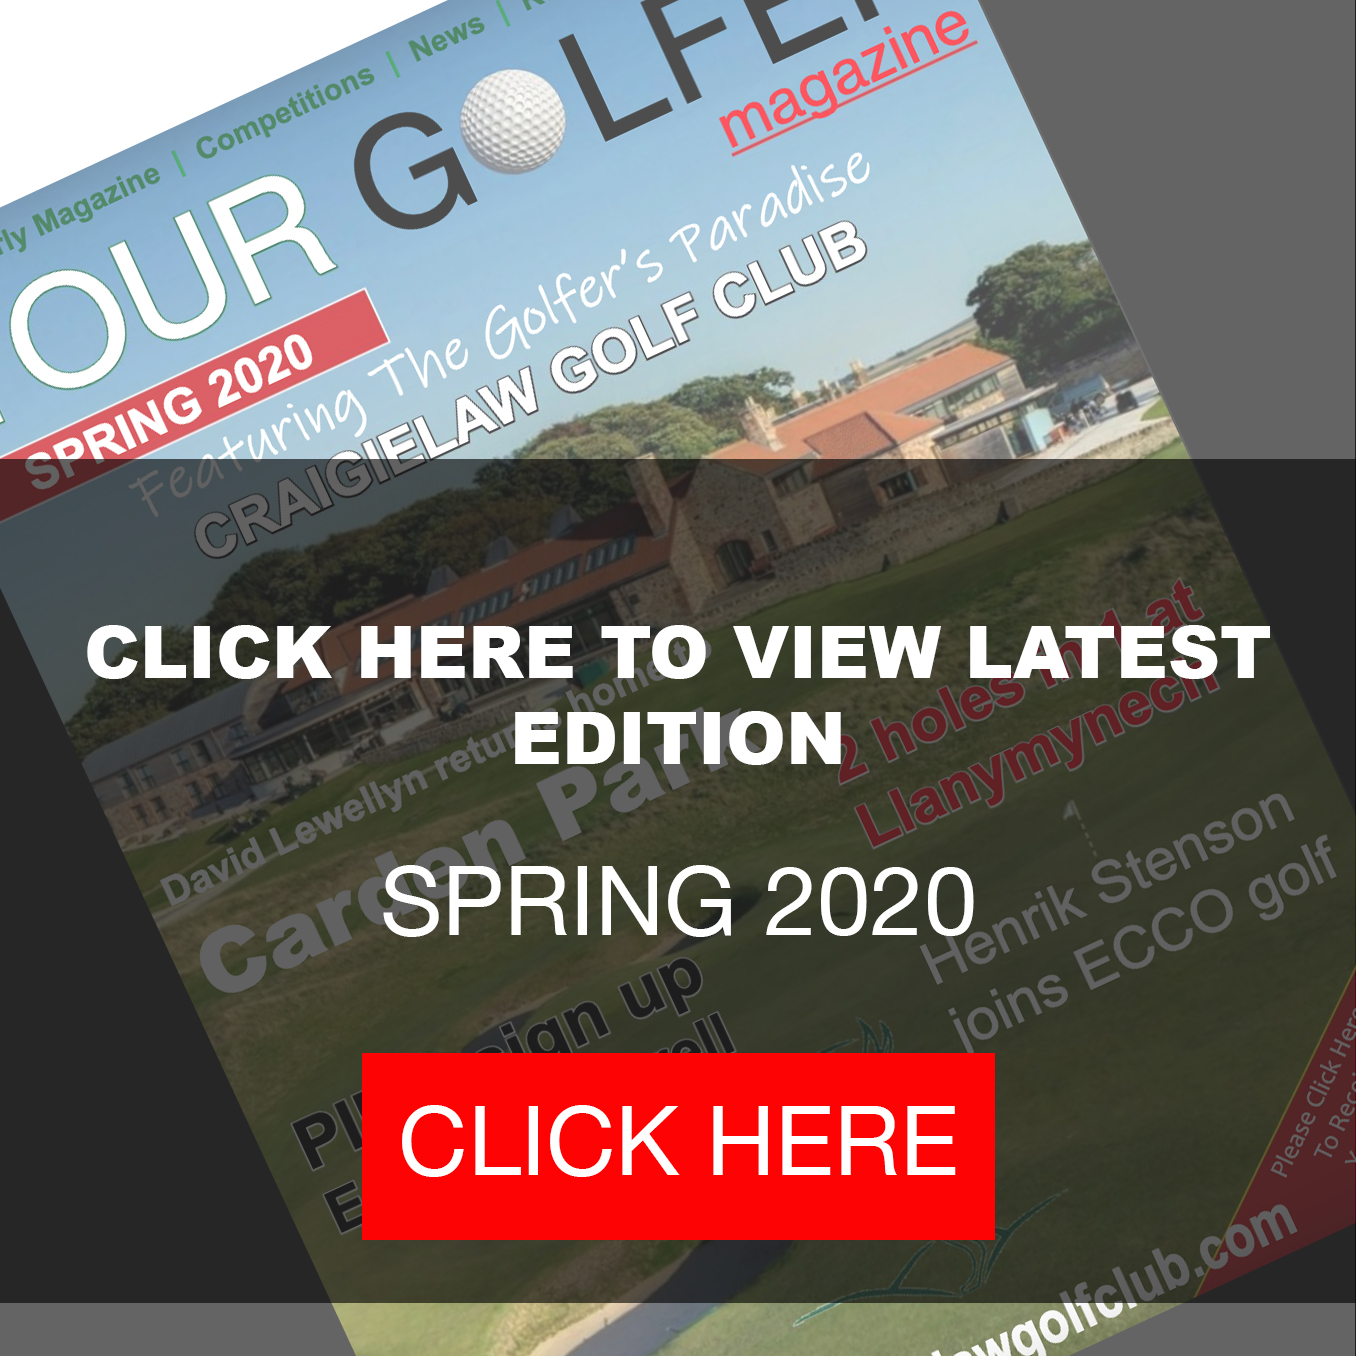 Your Golfer Magazine Spring 2020 Edition